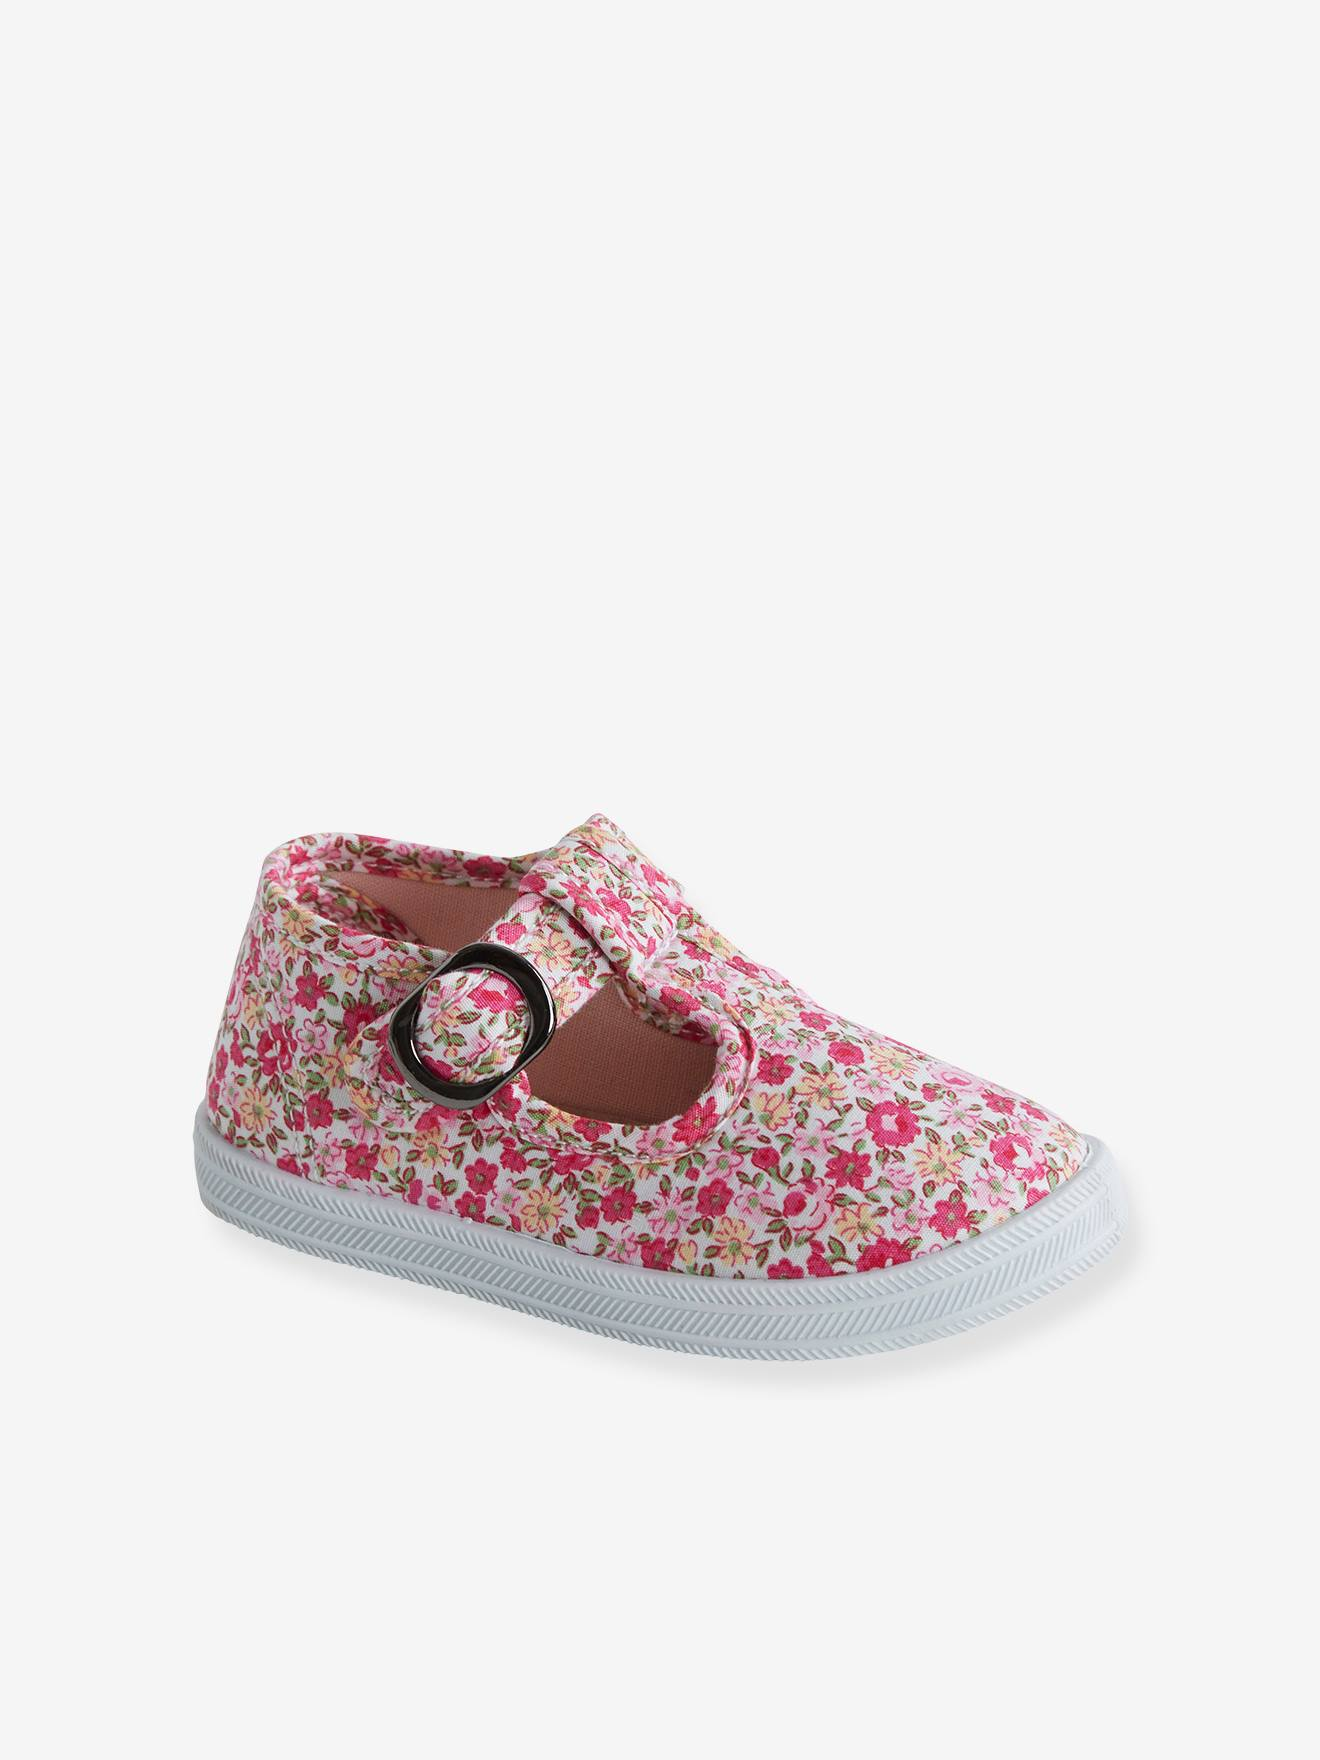 T Strap Sandals for Baby Girls, Designed for First Steps pink medium all over printed, Shoes